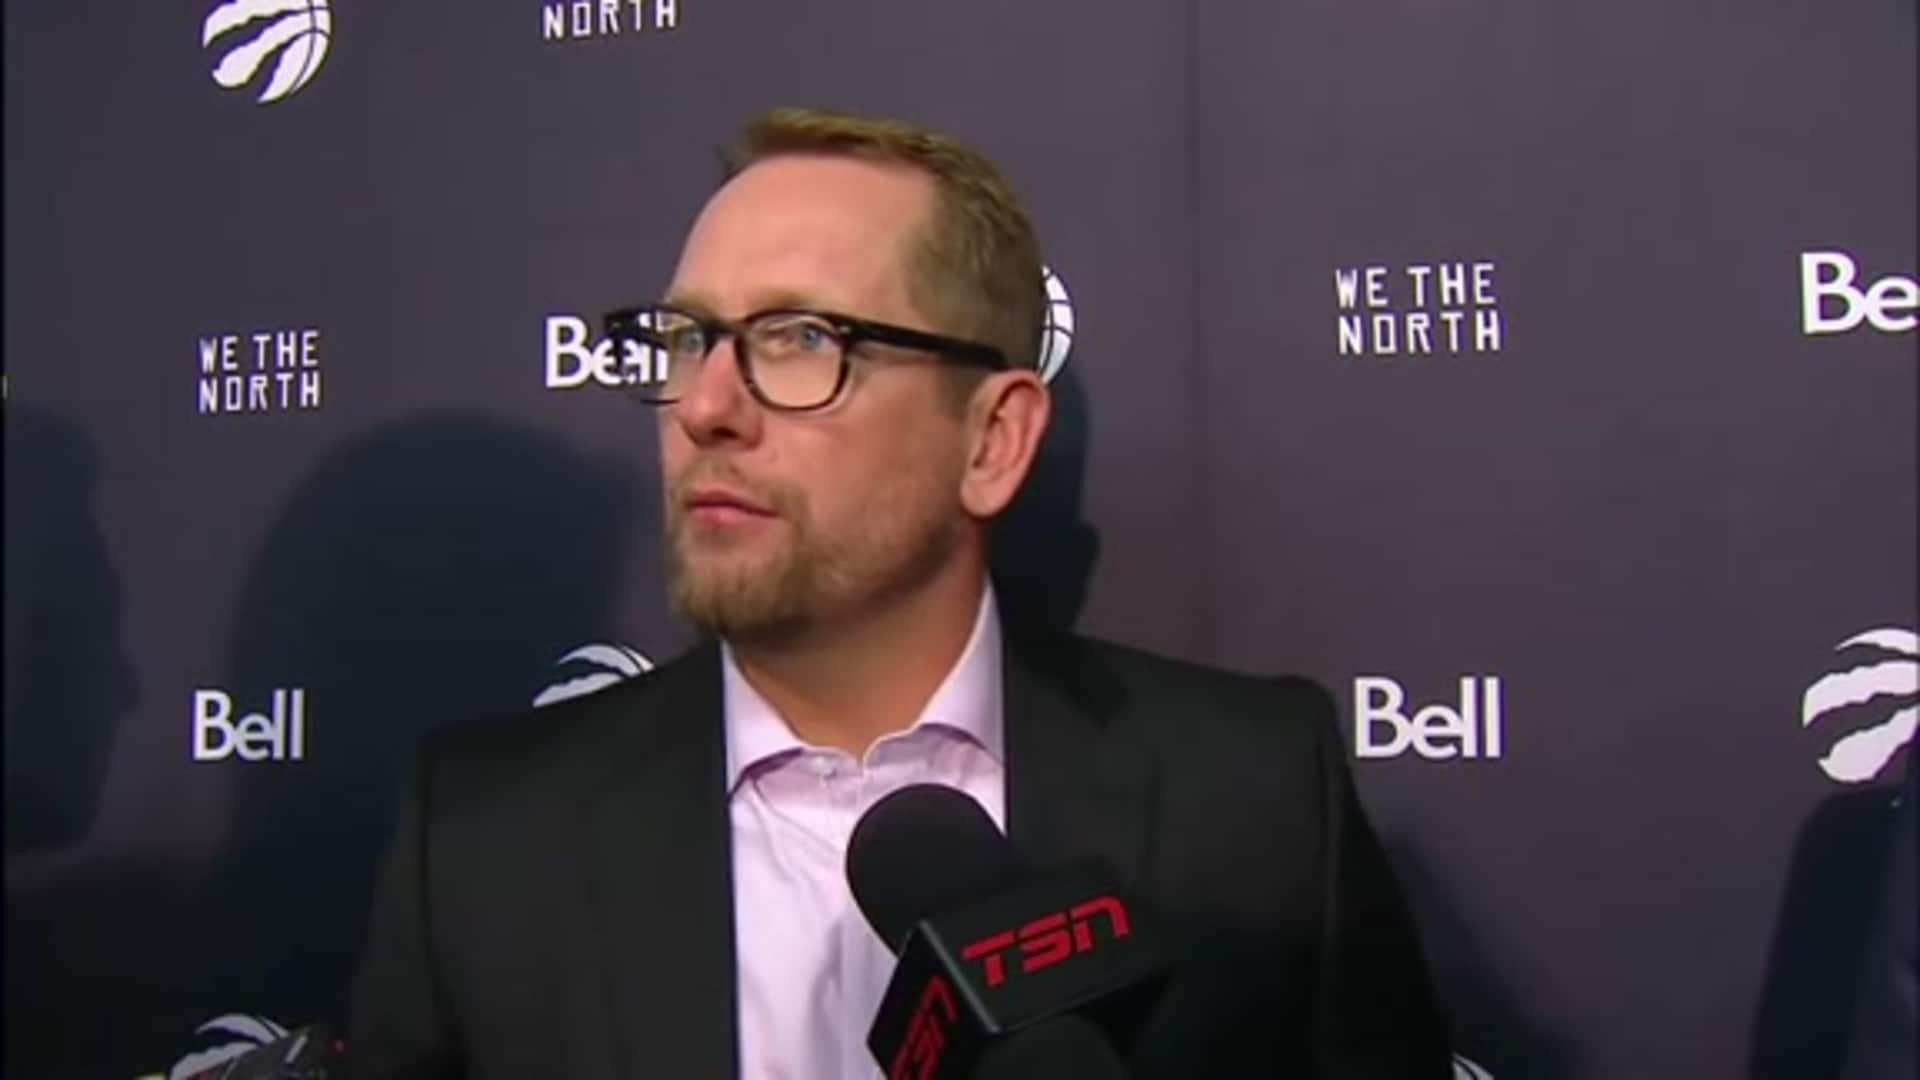 Raptors Post Game: Nick Nurse - October 26, 2019